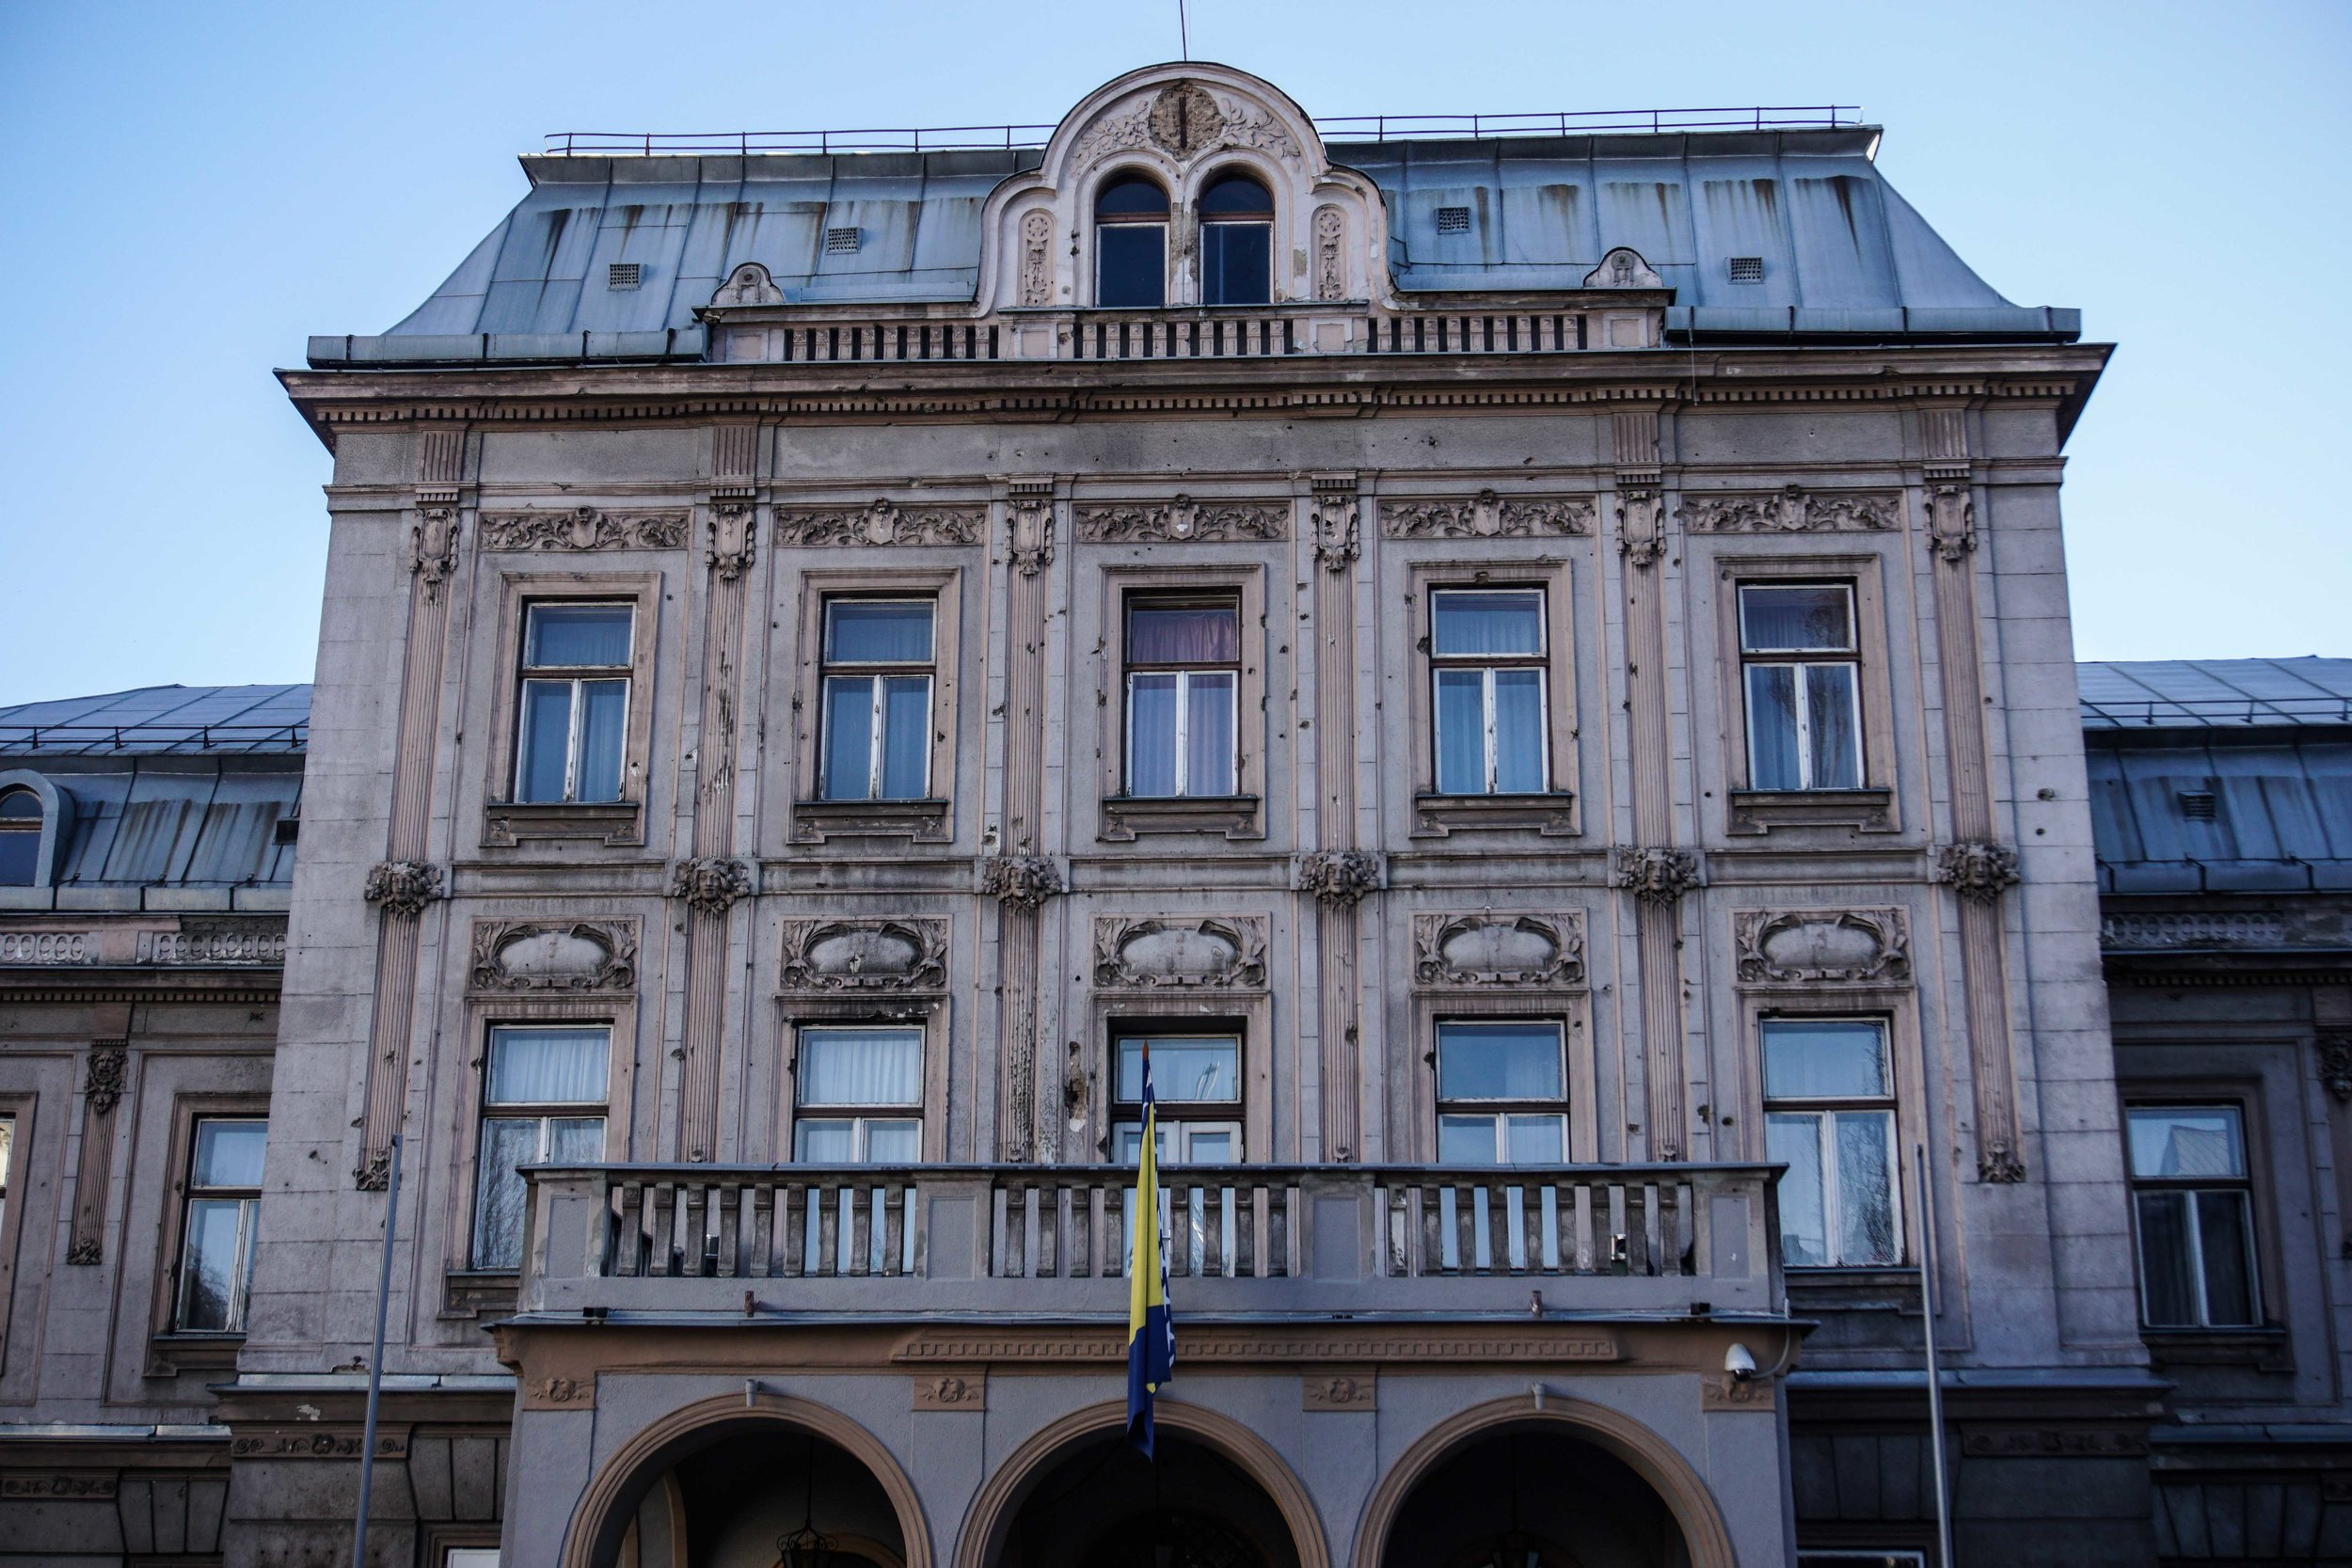 Bosnian Cultural Center with bullet holes throughout the facade